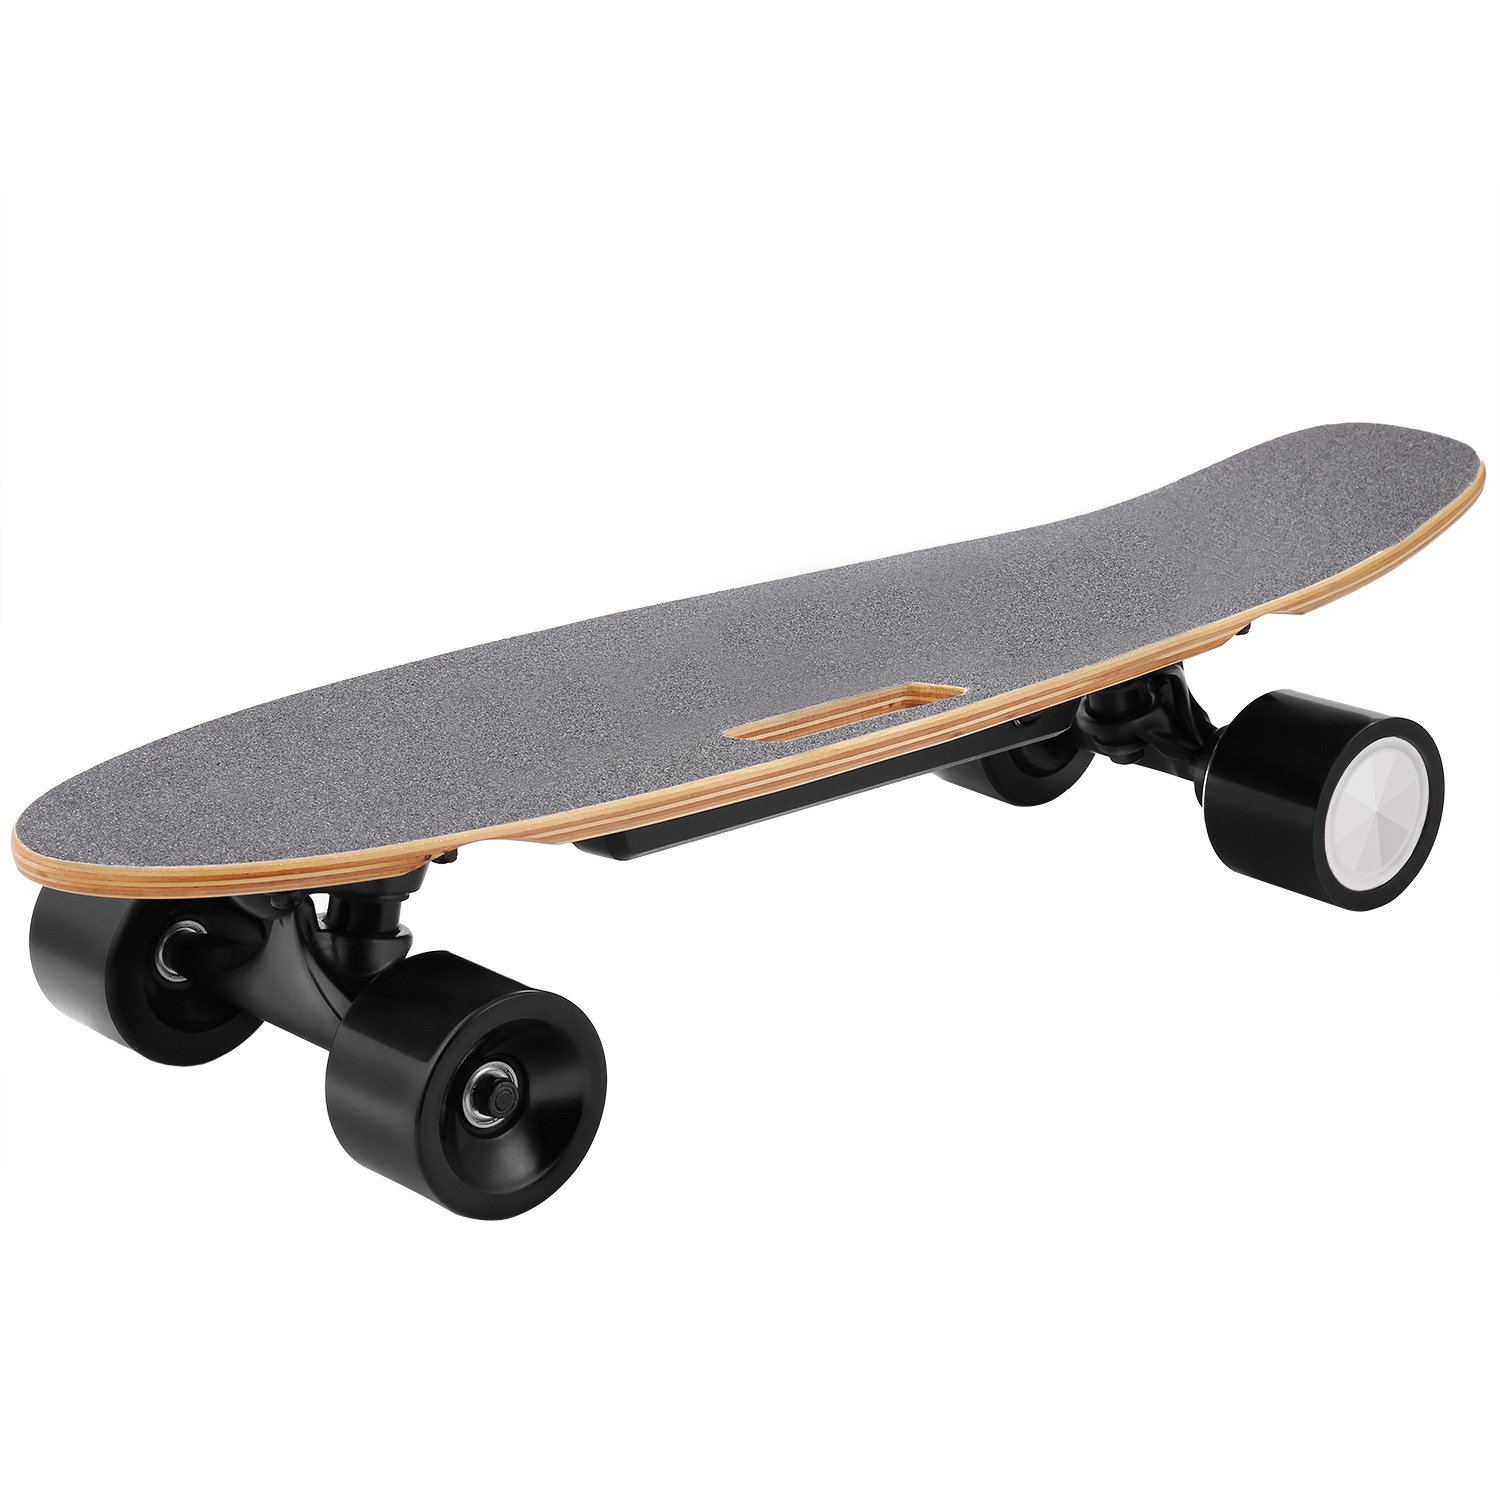 WeSkate E200 Mini Electric Cruiser Skateboard, 7-ply Canadian Maple, 12 MPH Max Speed, 350W Hub Motor Penny Board Motorized Skateboard with Remote Control